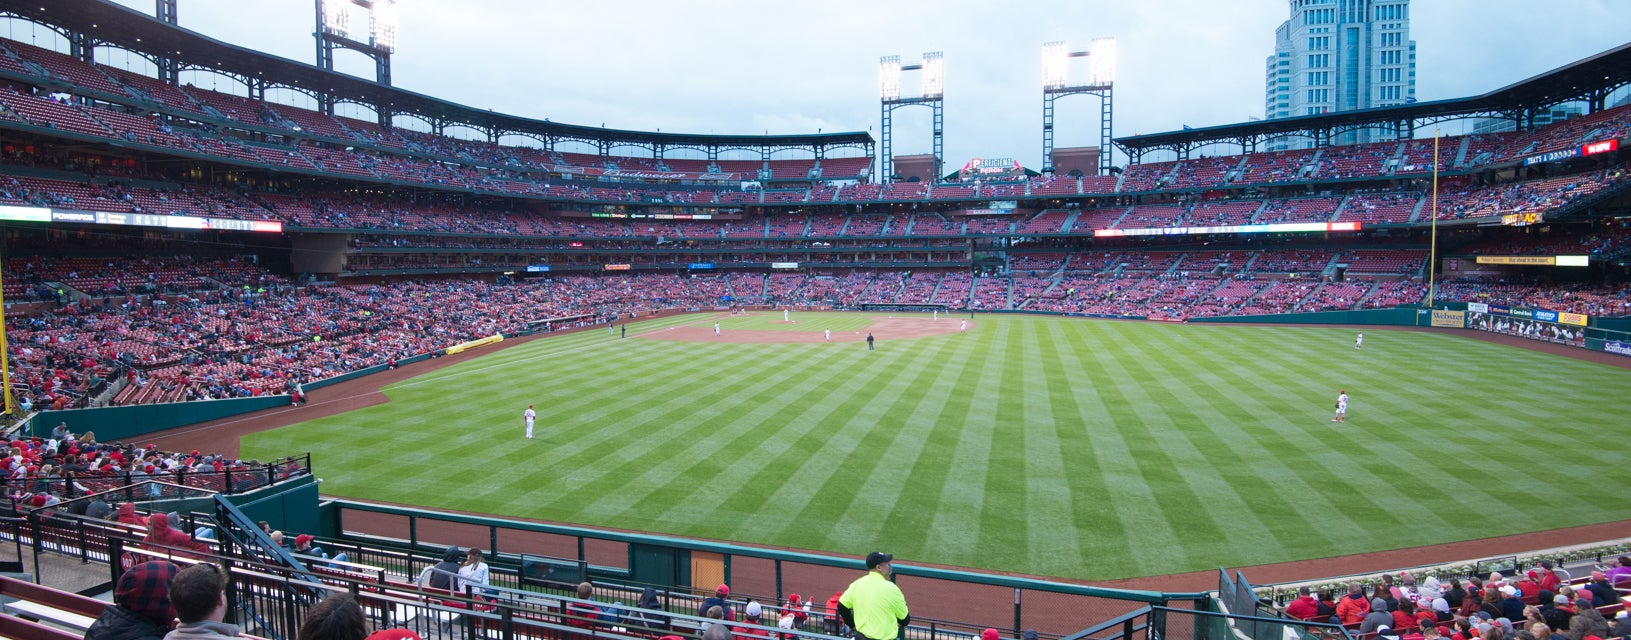 Seat view from Right Field Bleachers